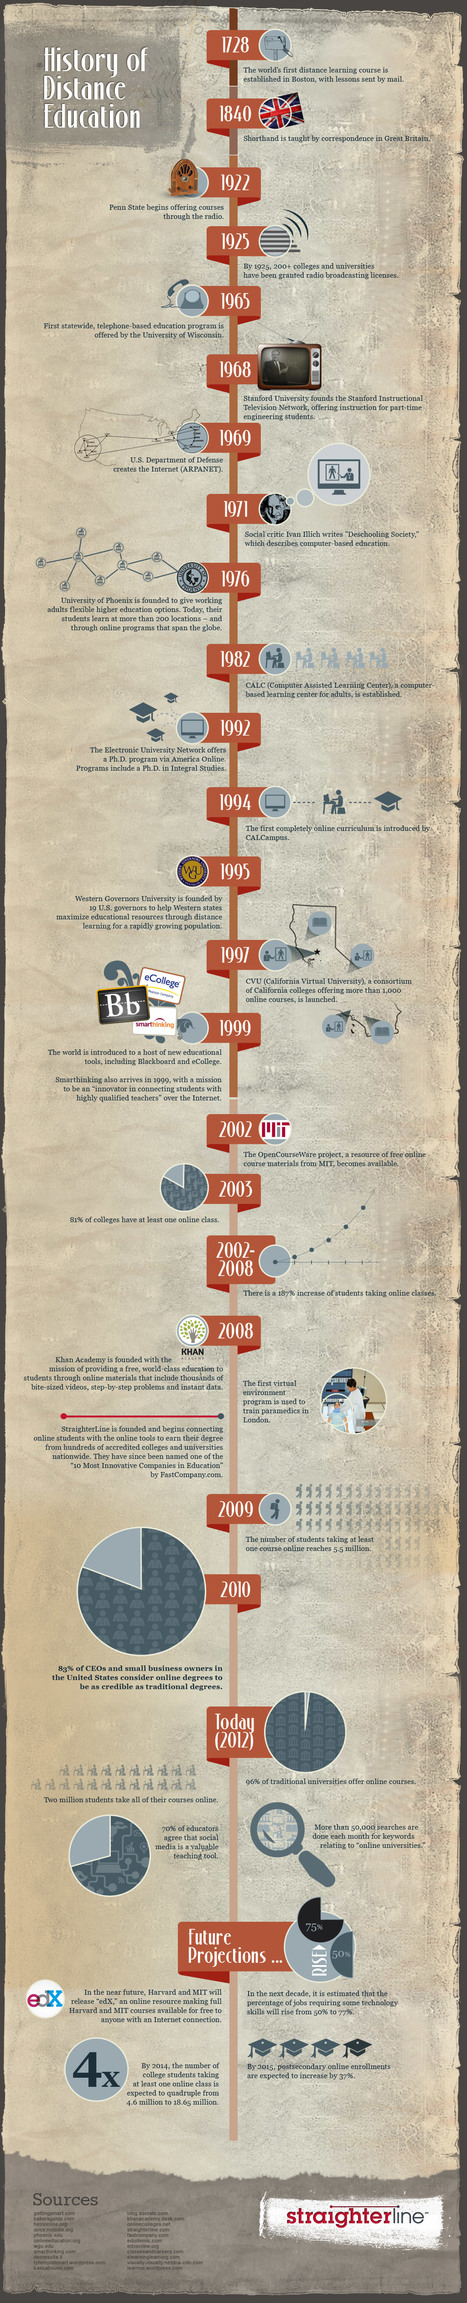 History of Distance & Online Education - Education Infographic - StraighterLine | psych | Scoop.it